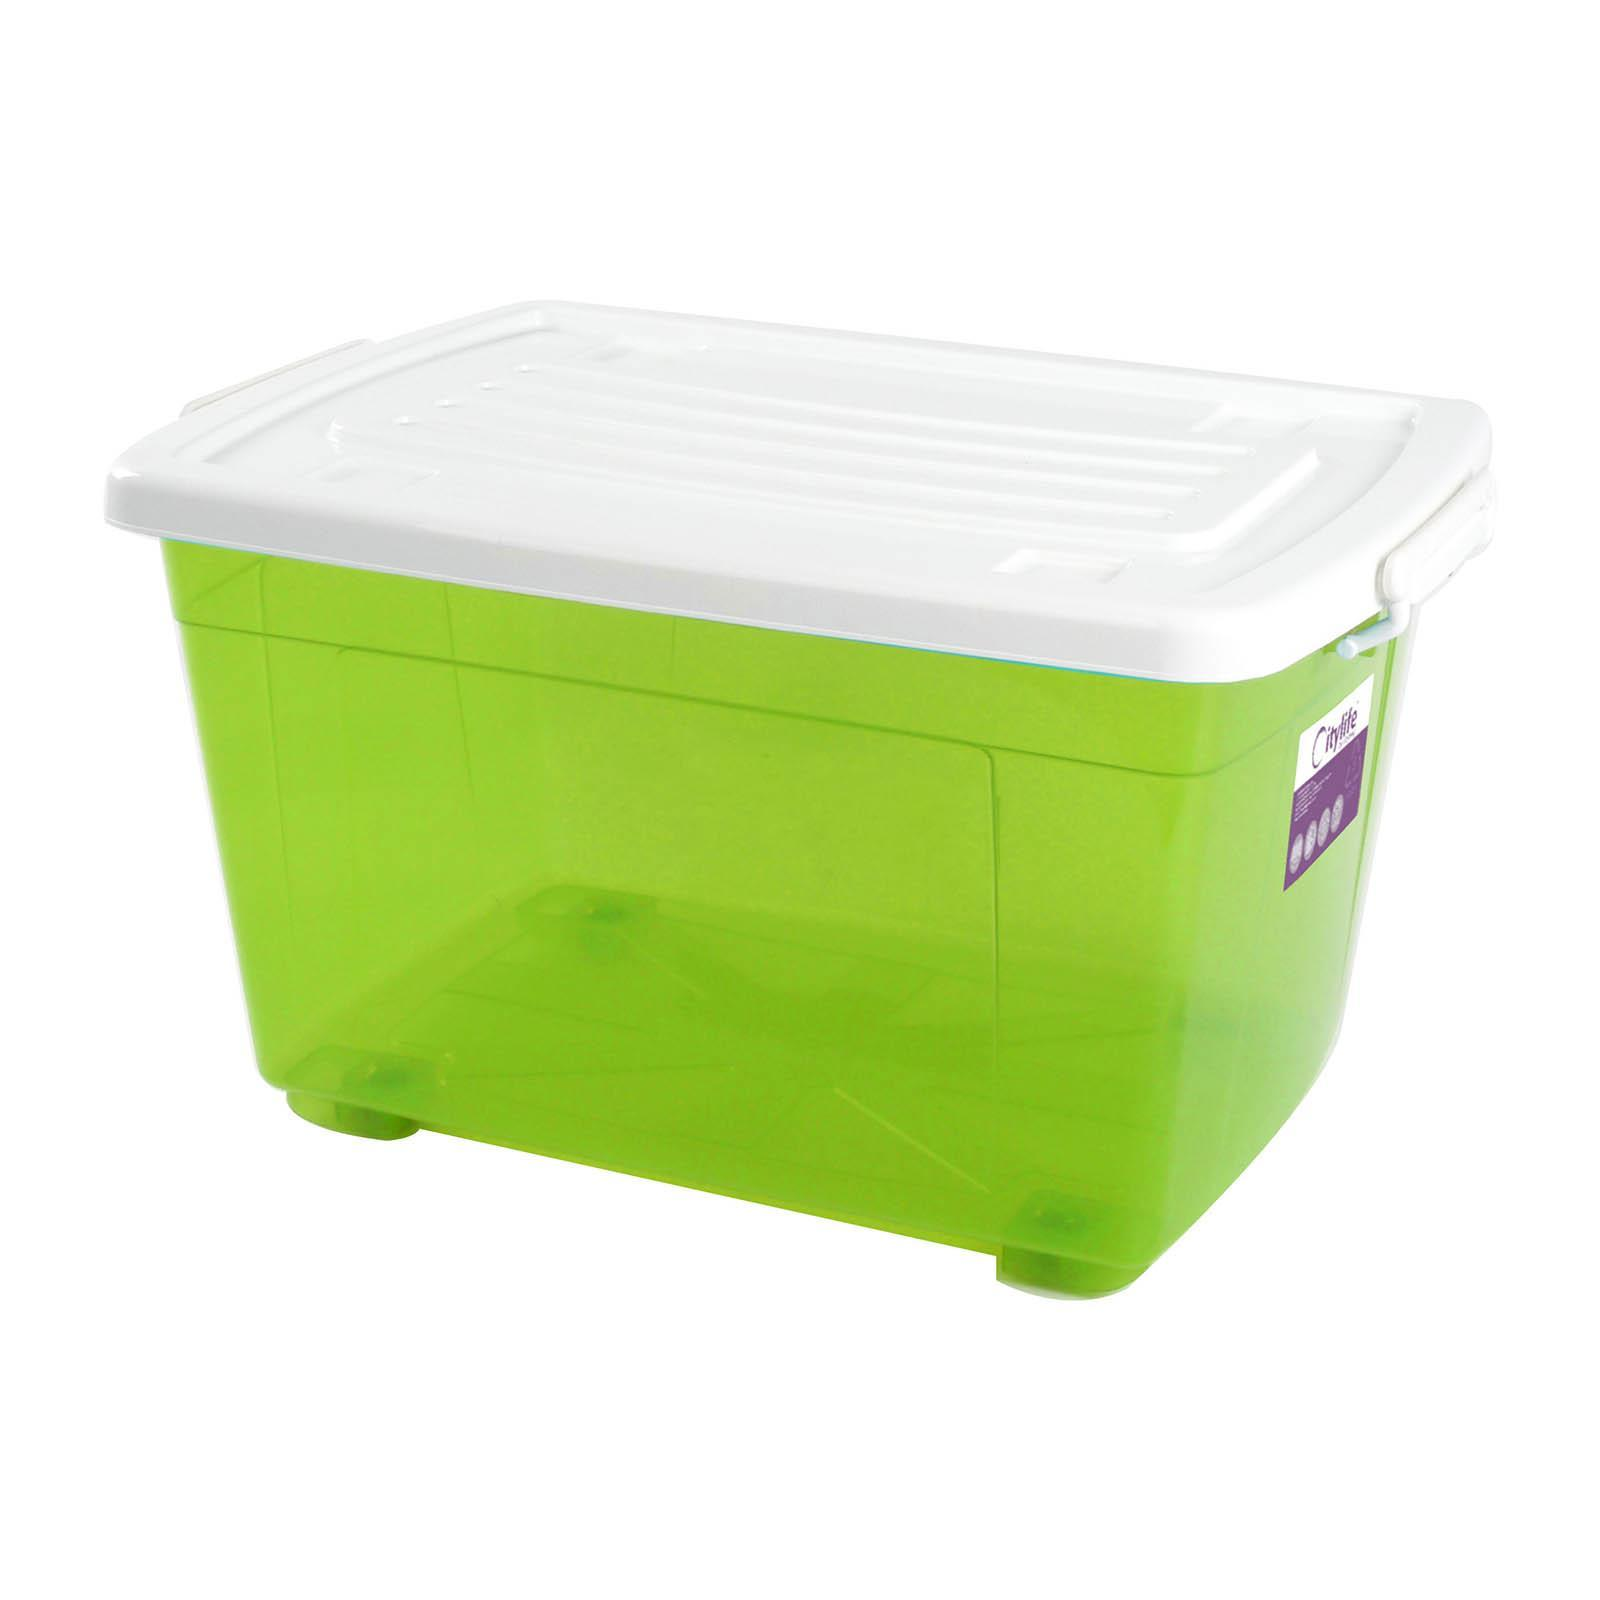 CITYLIFE Storage Container With Wheels